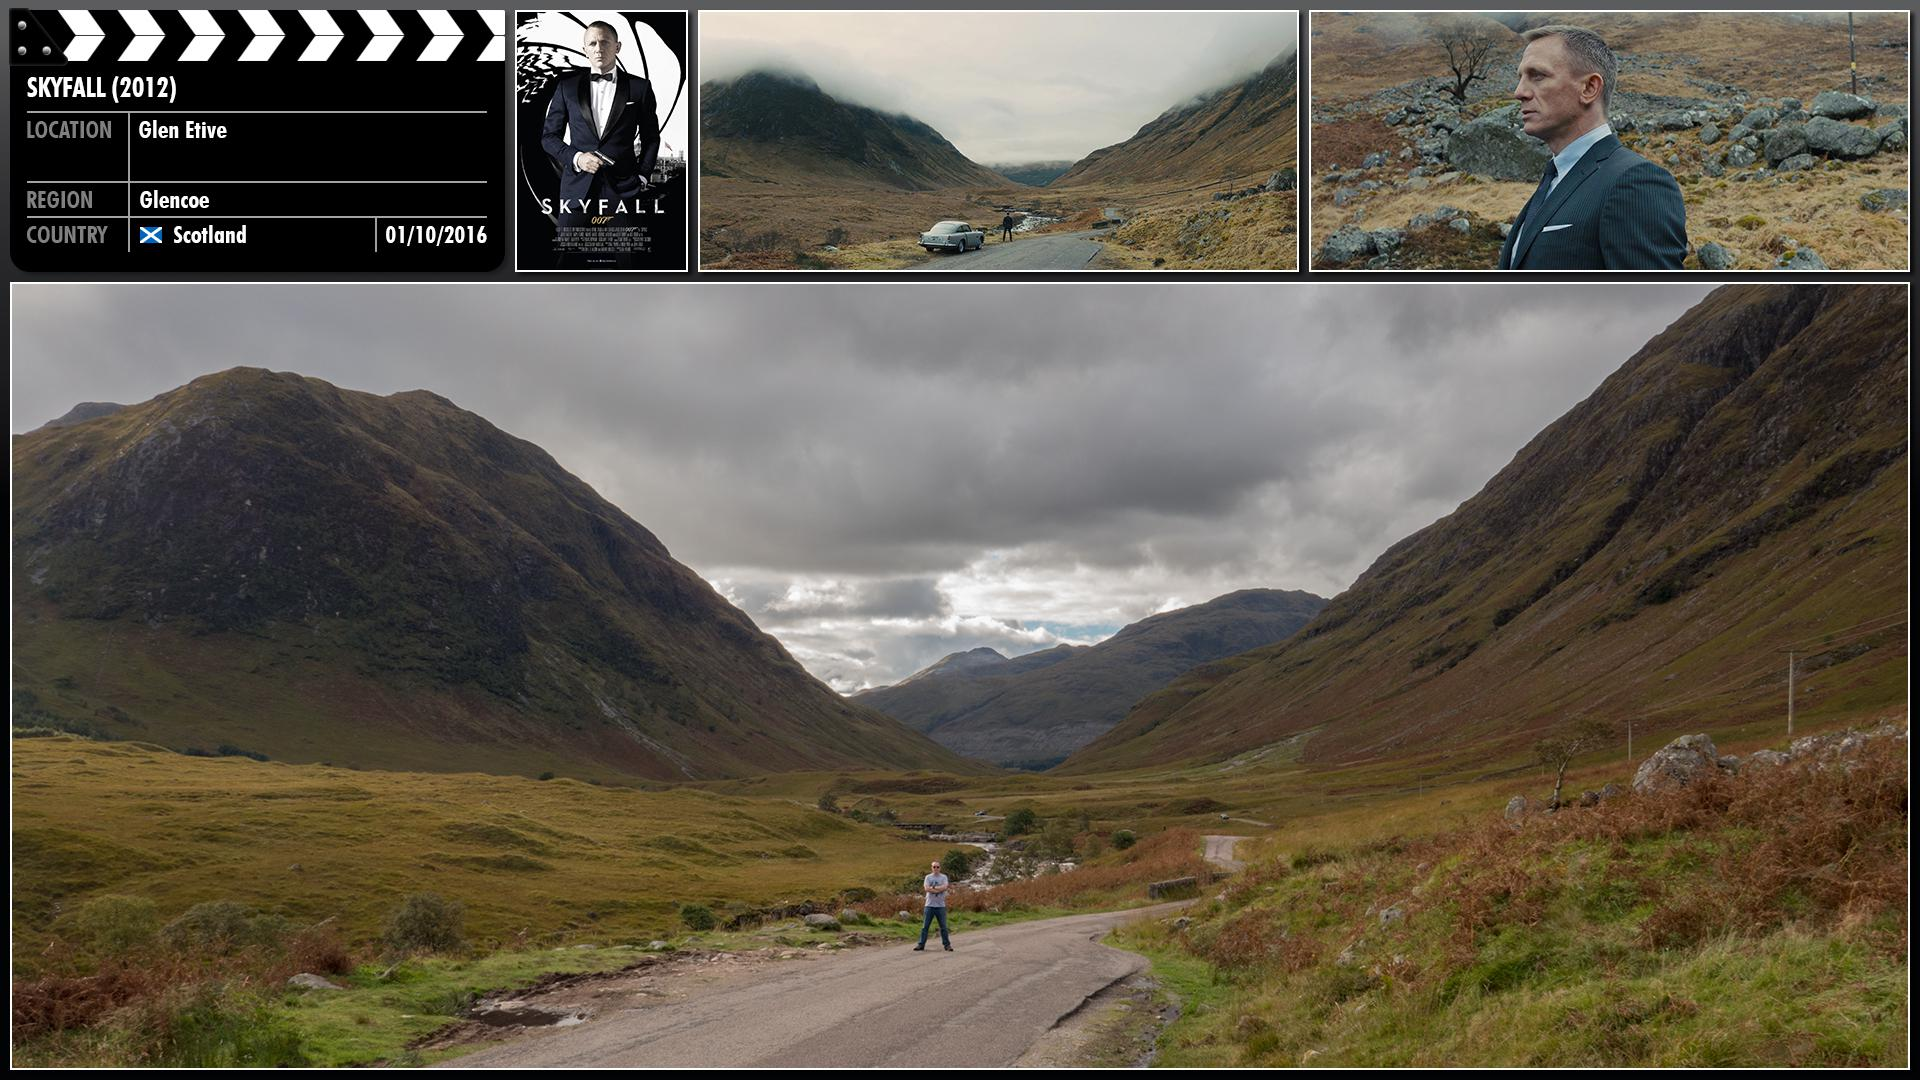 Filming location photo for Skyfall (2012) 1 of 3